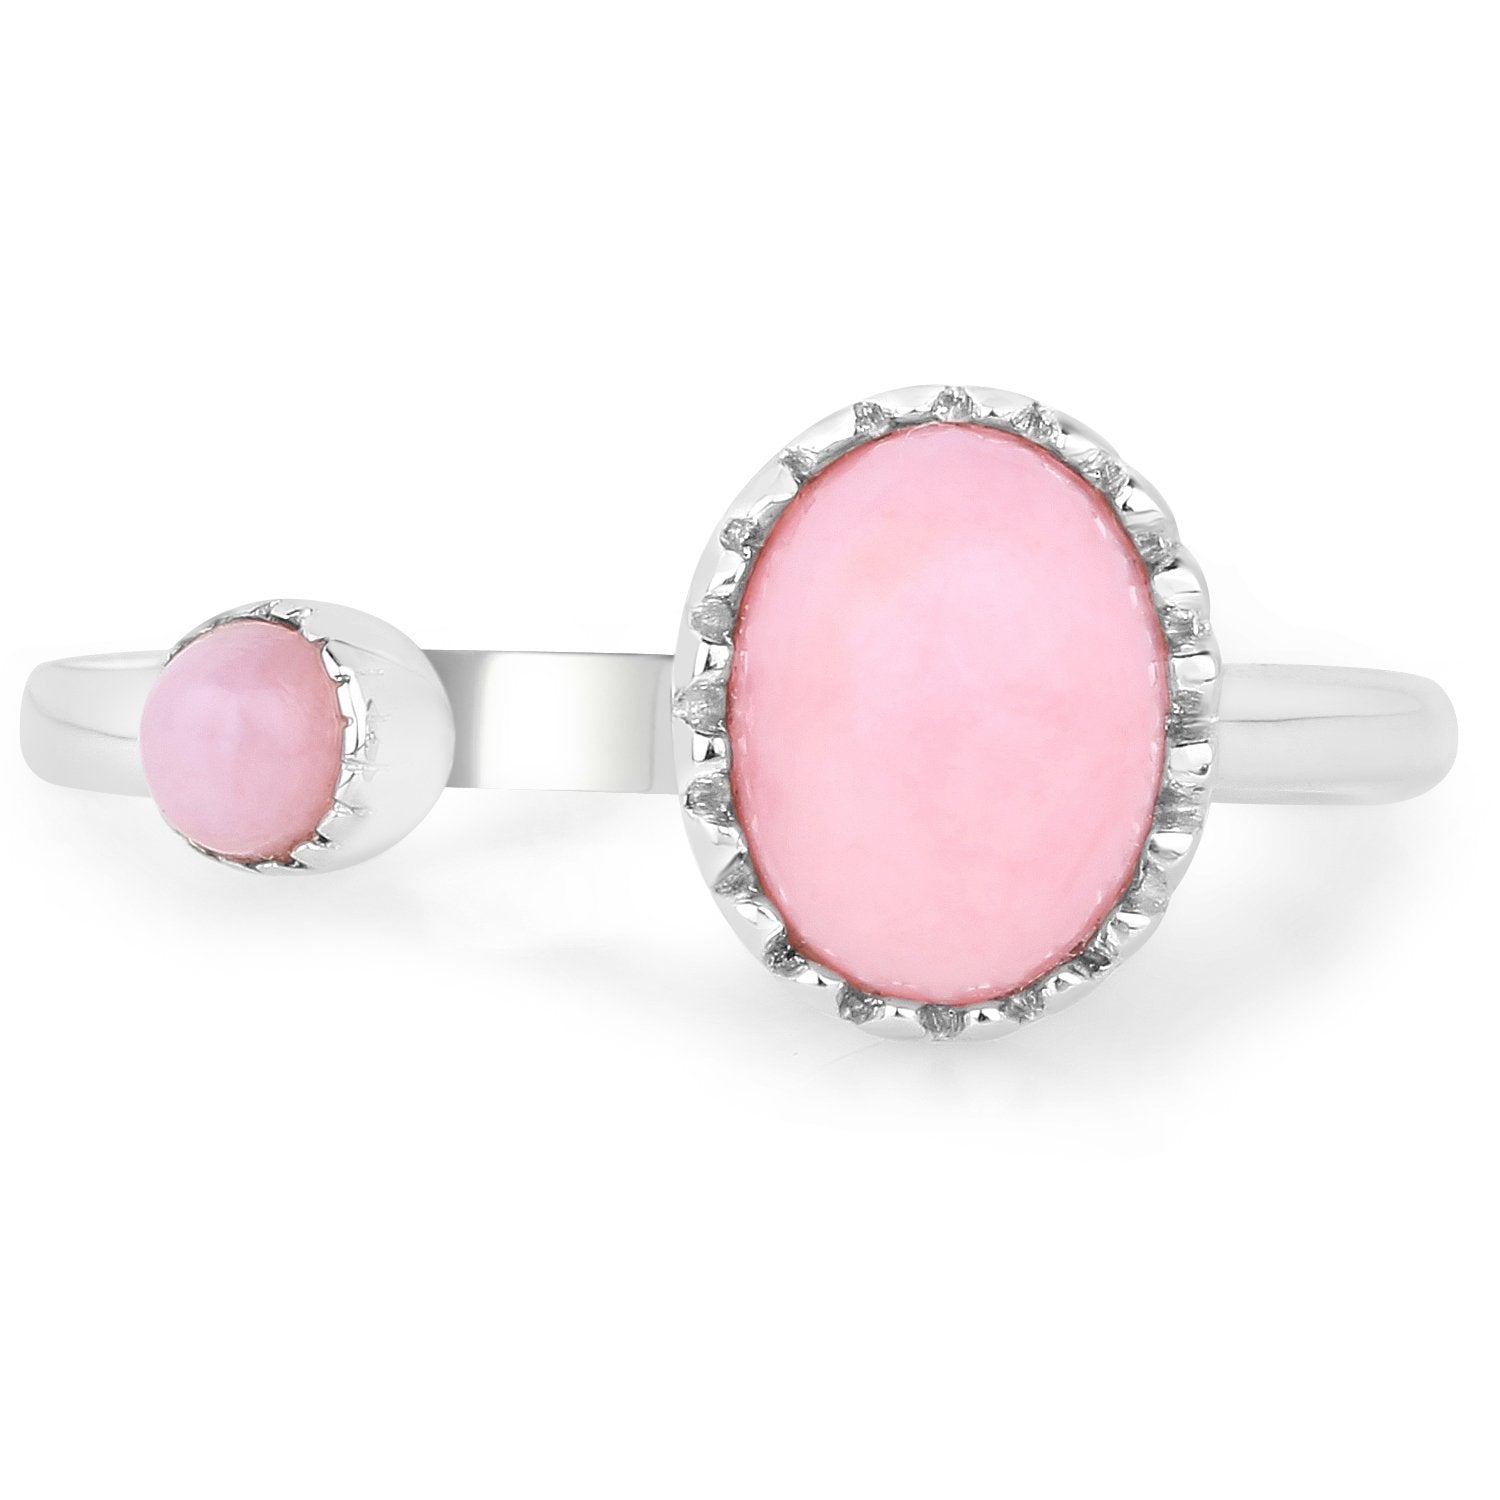 LoveHuang 1.10 Carats Genuine Pink Opal Ring Solid .925 Sterling Silver With Rhodium Plating